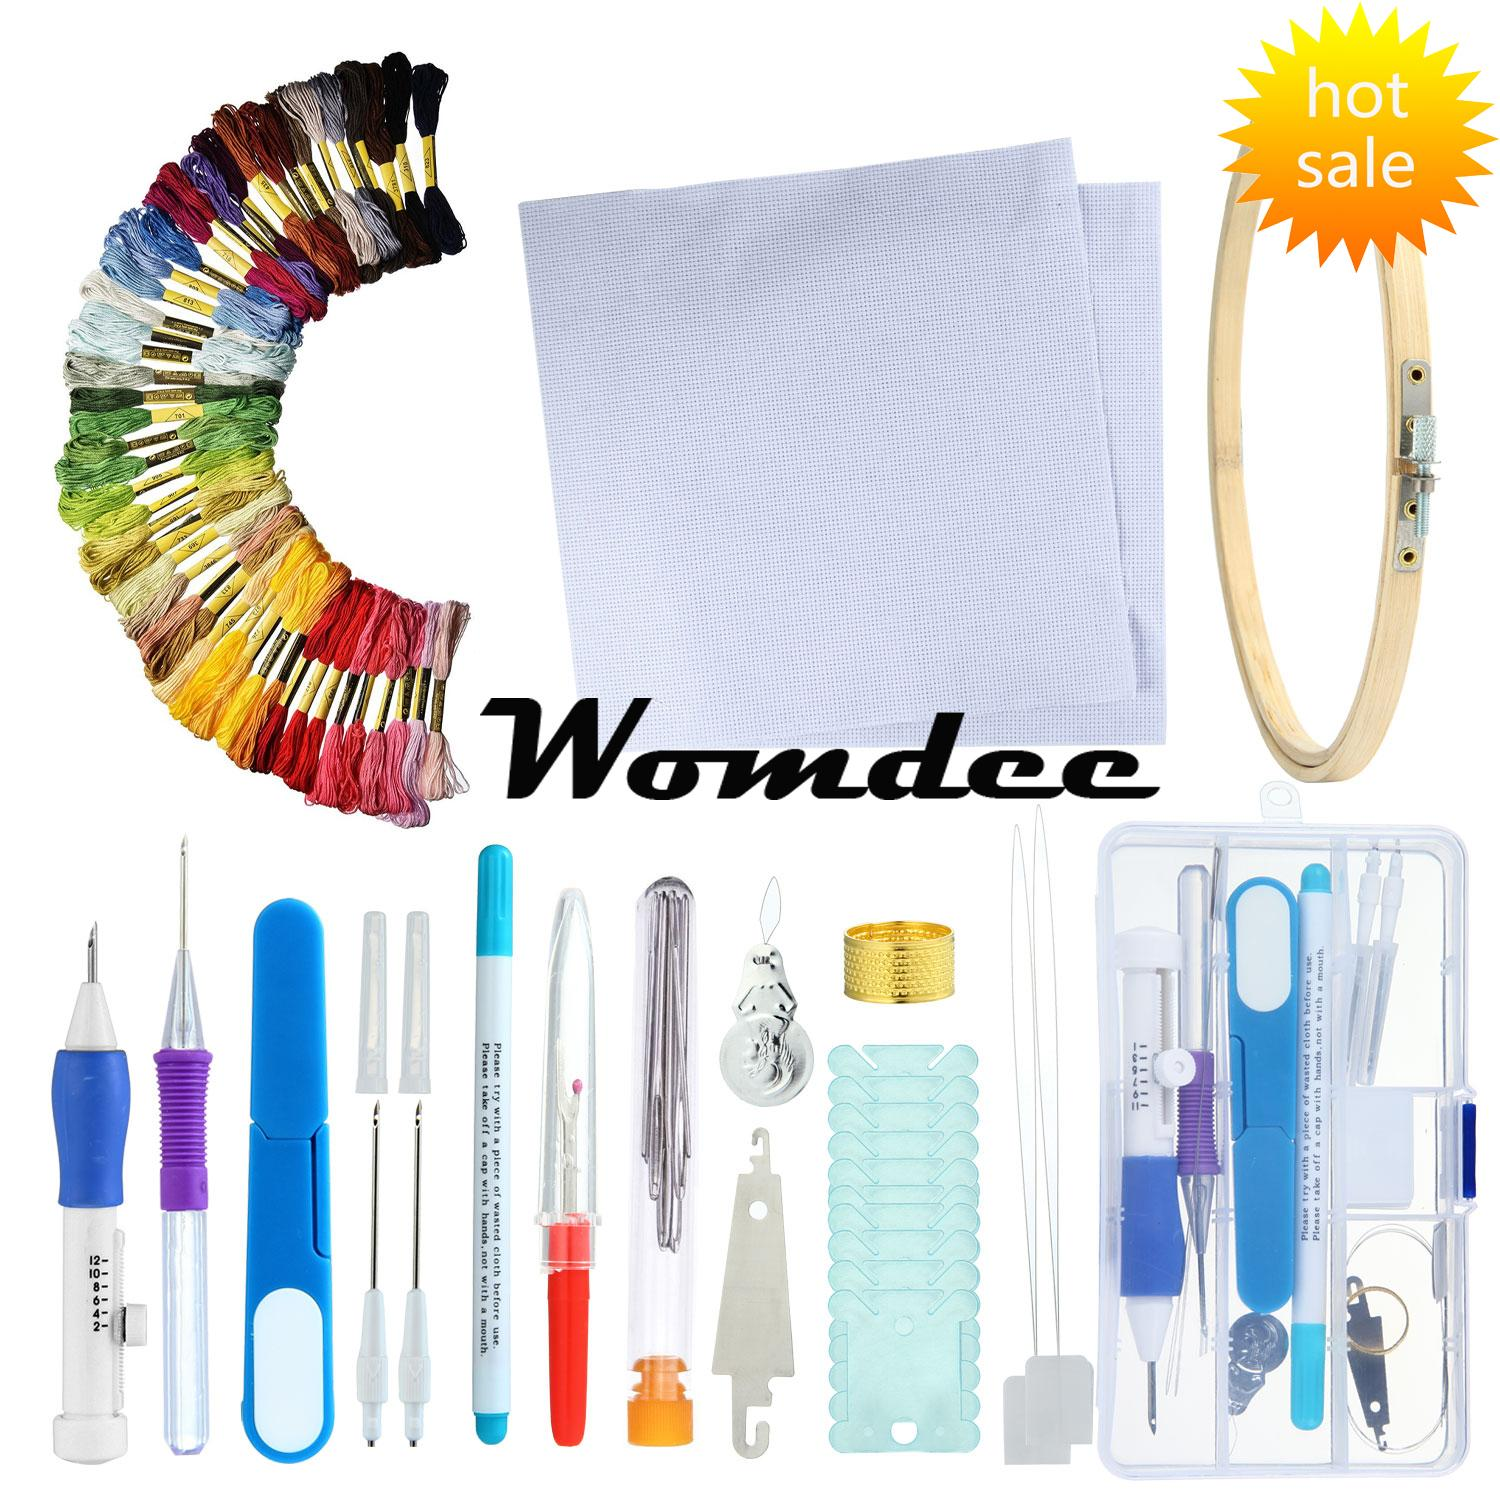 Womdee Magic Embroidery Pen Embroidery Stitching Punch Needles Pen Set Craft Tool For Diy Threaders Sewing Knitting Kit - Intl By Womdee.